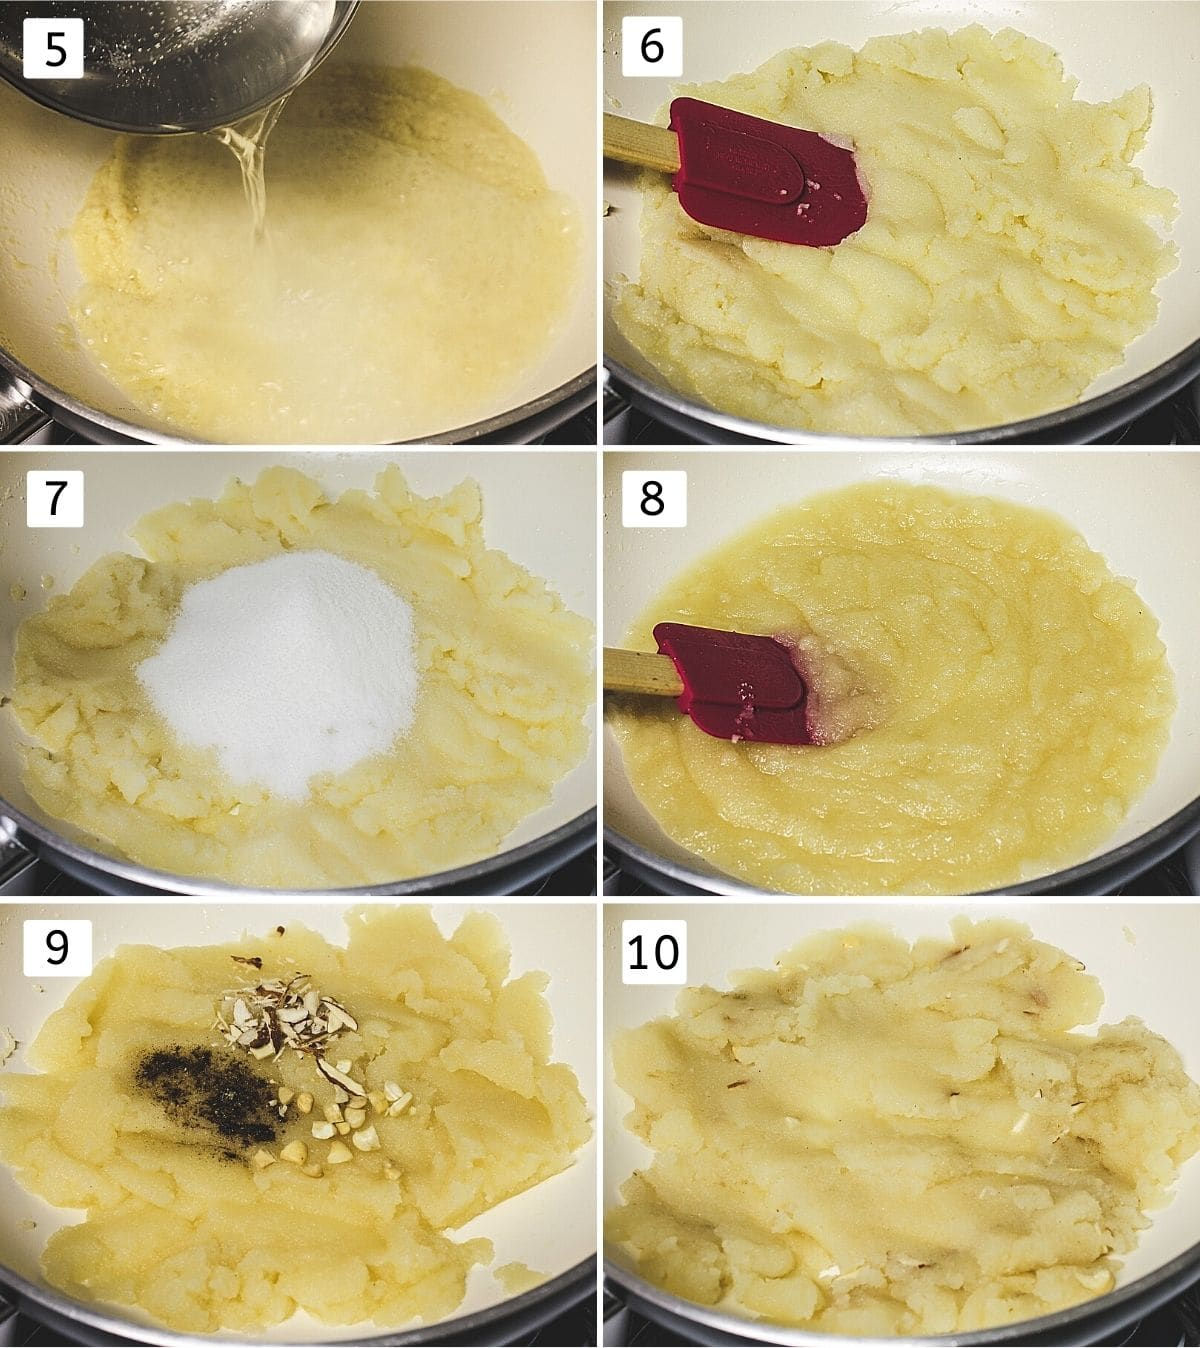 Collage of 6 images showing adding water, mixing, adding sugar, cooking, adding nuts, cardamom and mixing